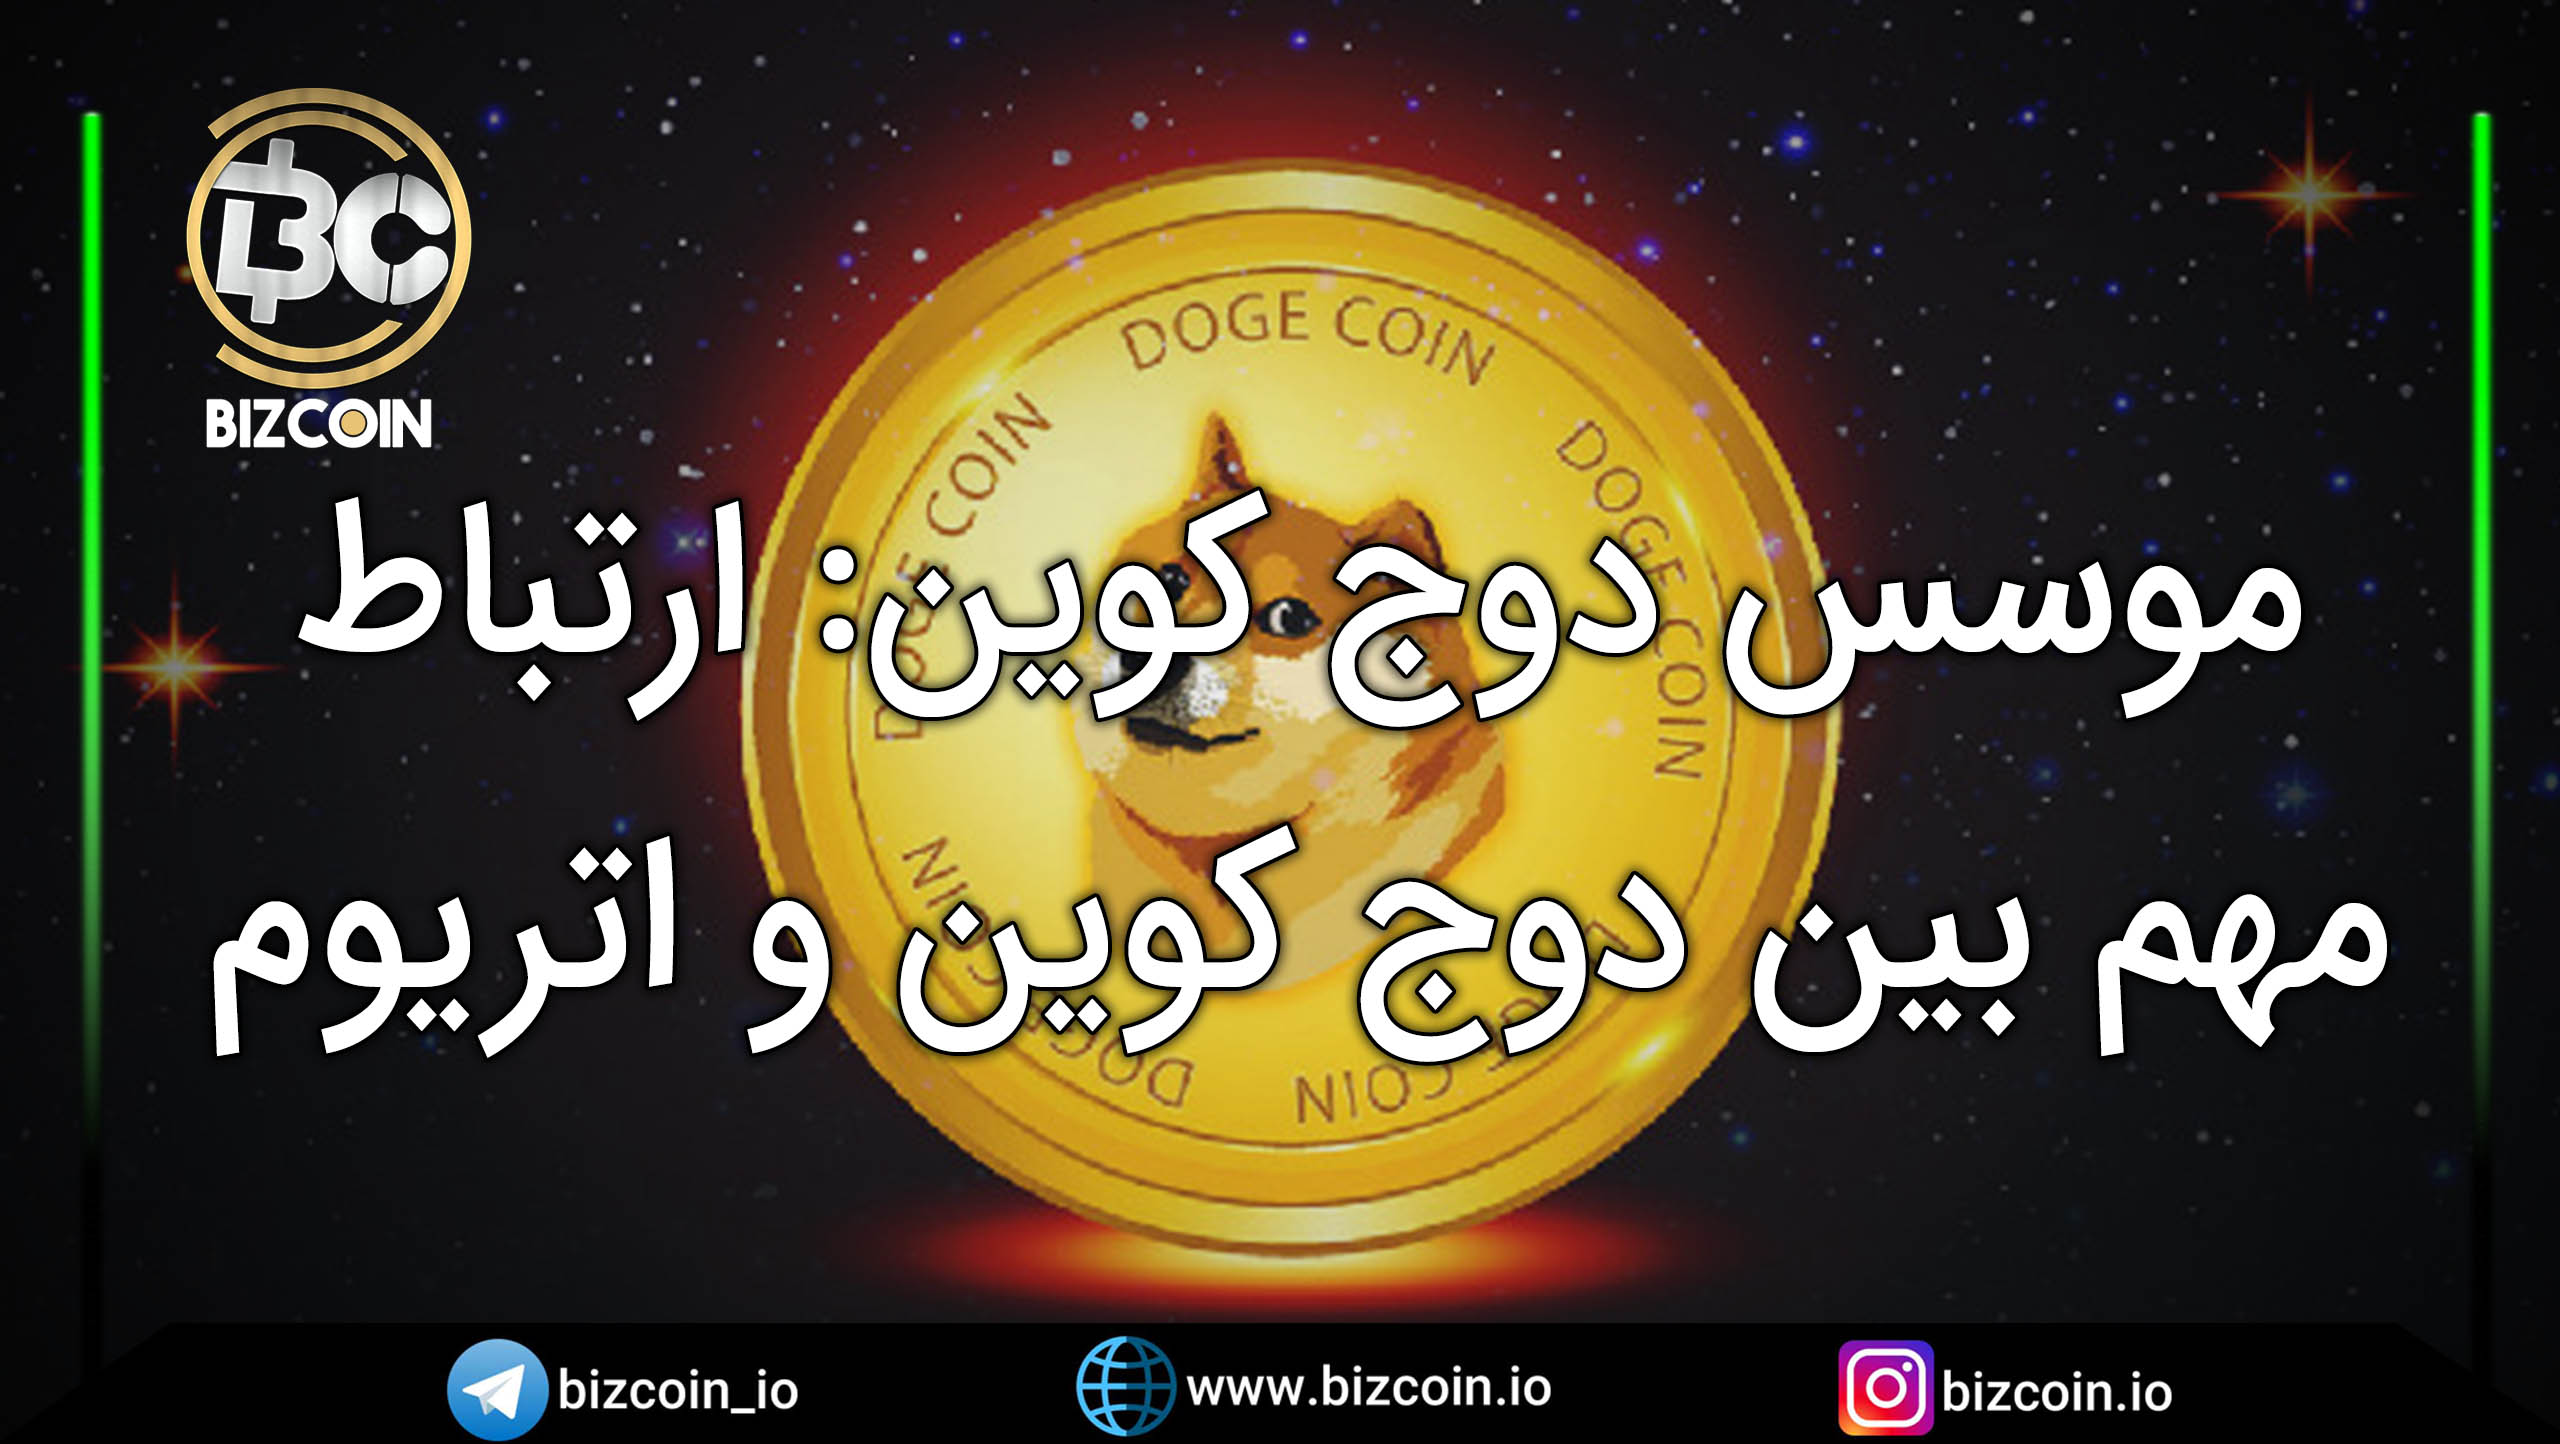 Founder of dogecoin An important link between dogecoin and ethereum موسس دوج کوین: ارتباط مهم بین دوج کوین و اتریوم